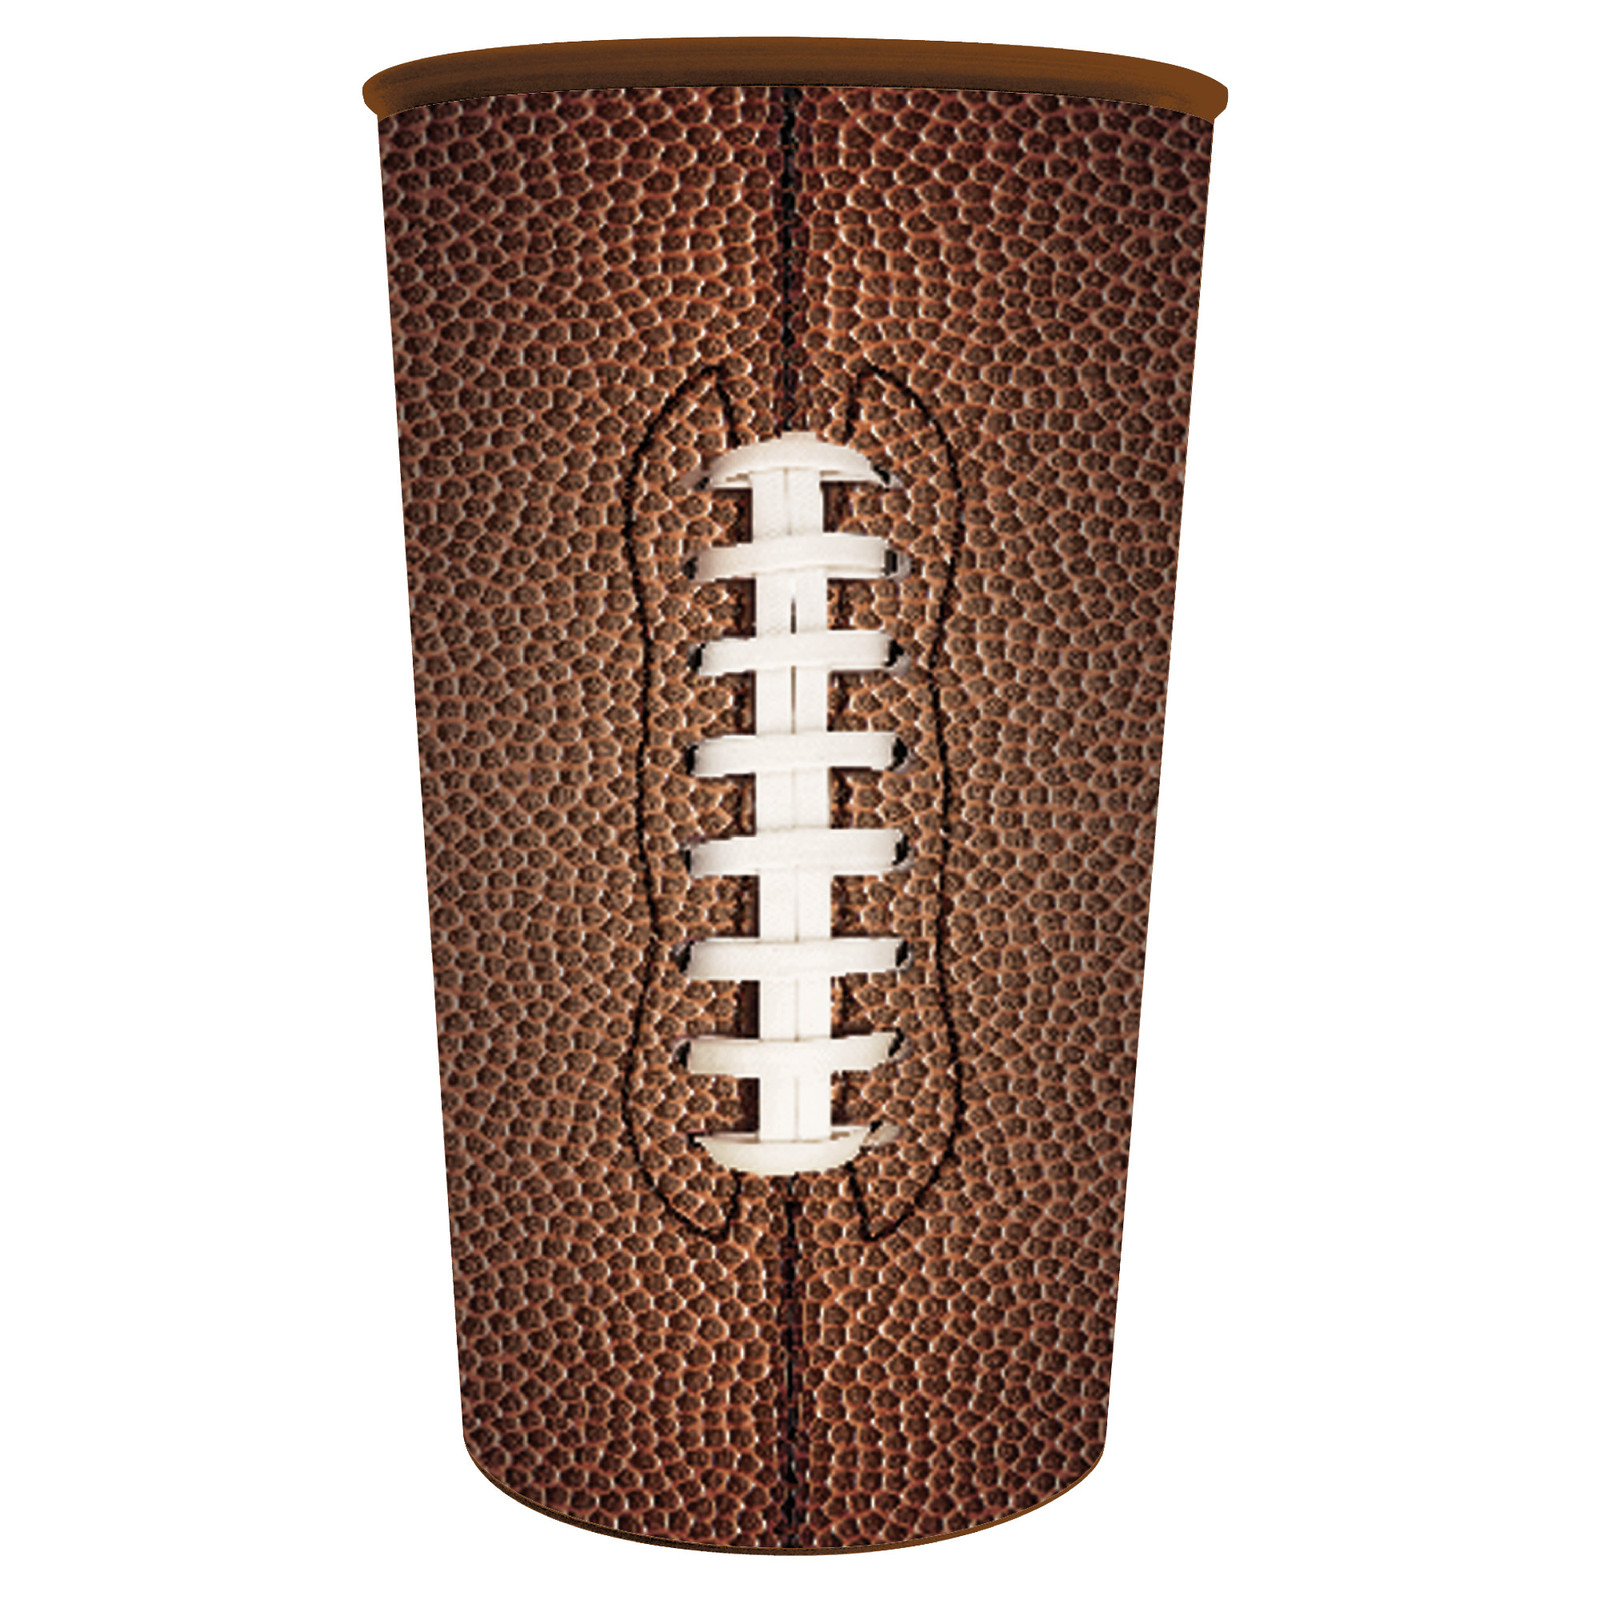 Football 22 oz Plastic Souvenir Cup/Case of 20